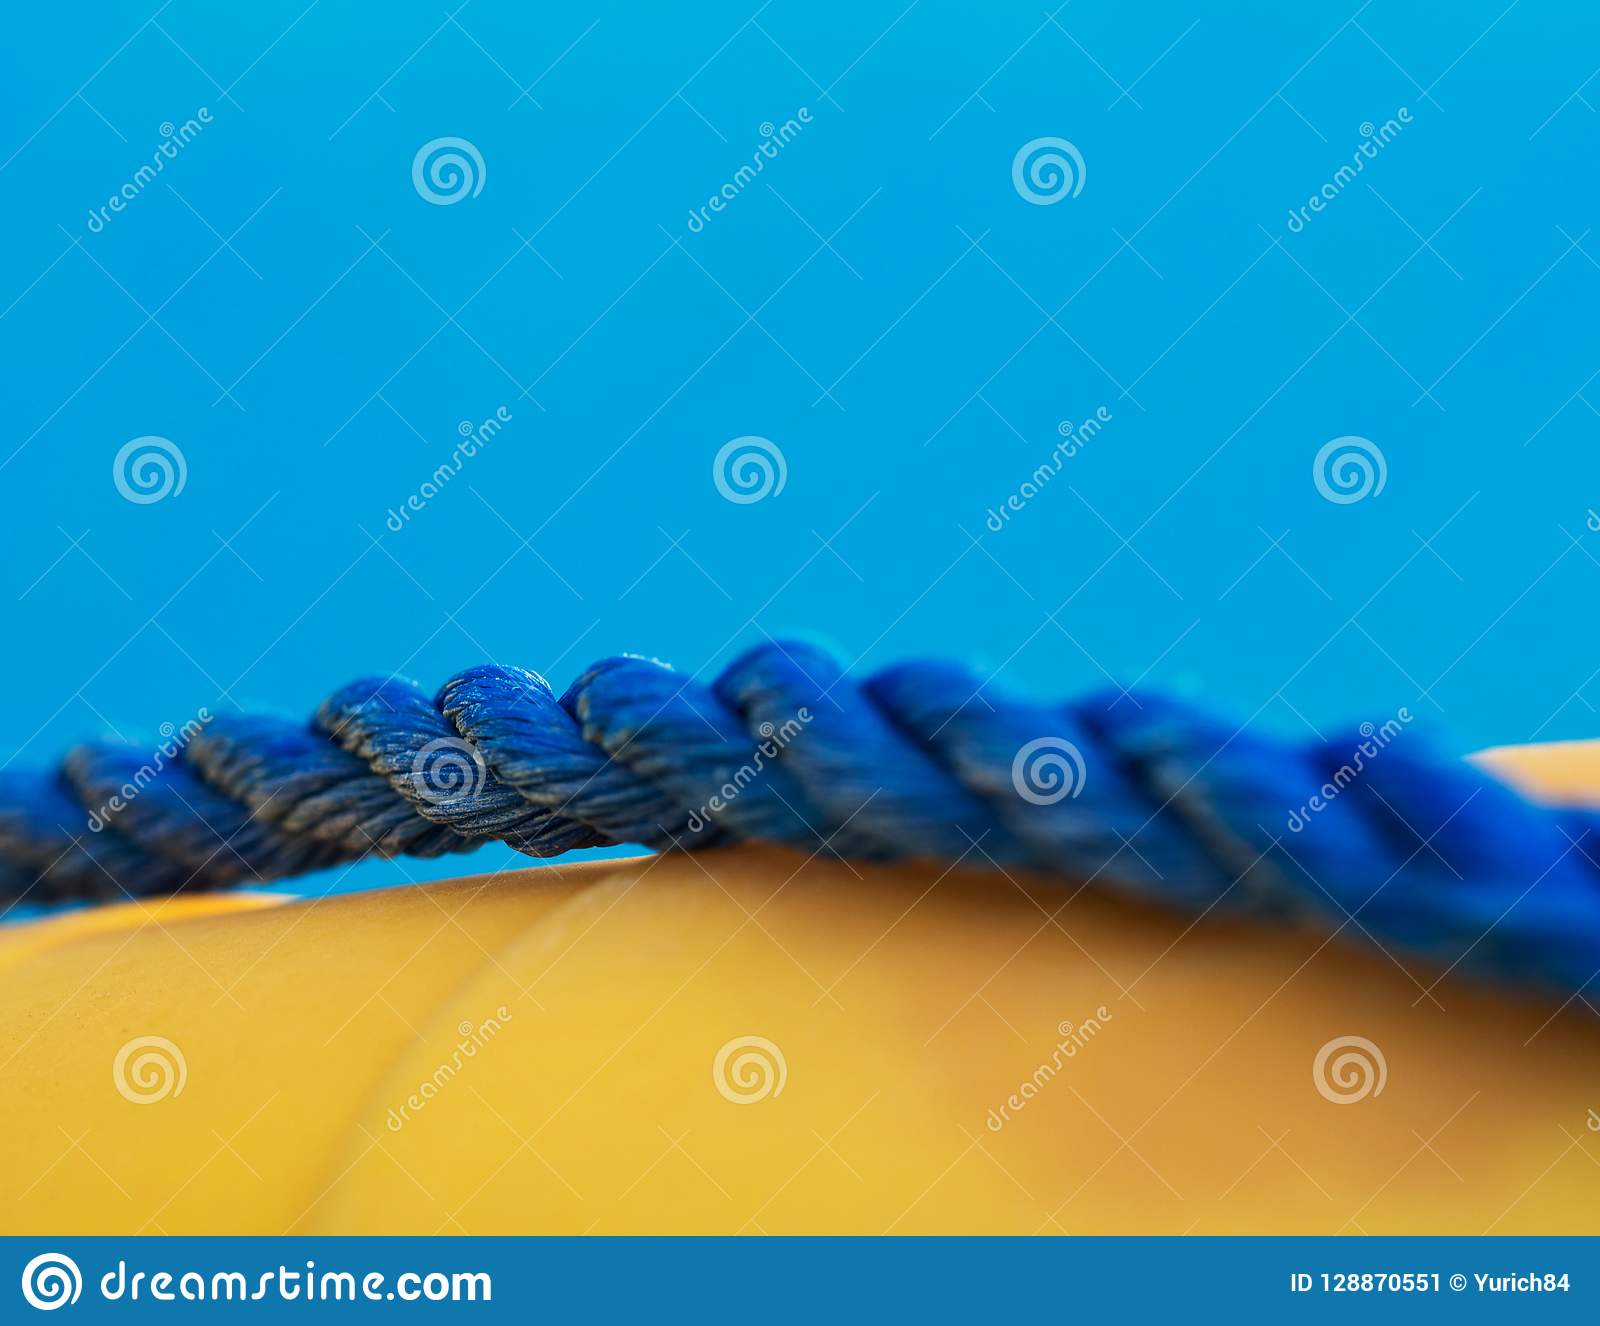 Close-up of blue marine twisted rope on yellow lifebuoy, shallow dept of field